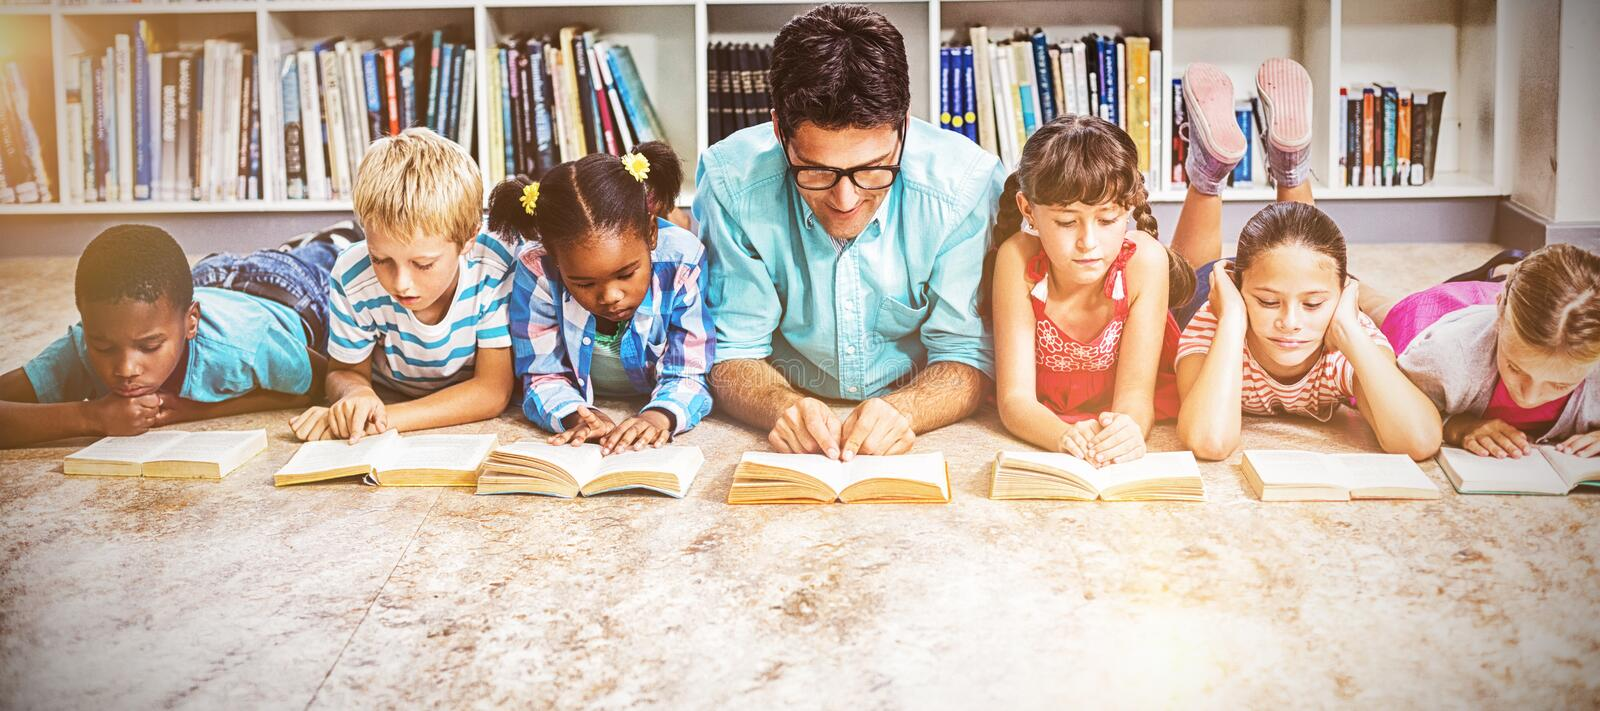 Teacher and kids reading book in library royalty free stock images